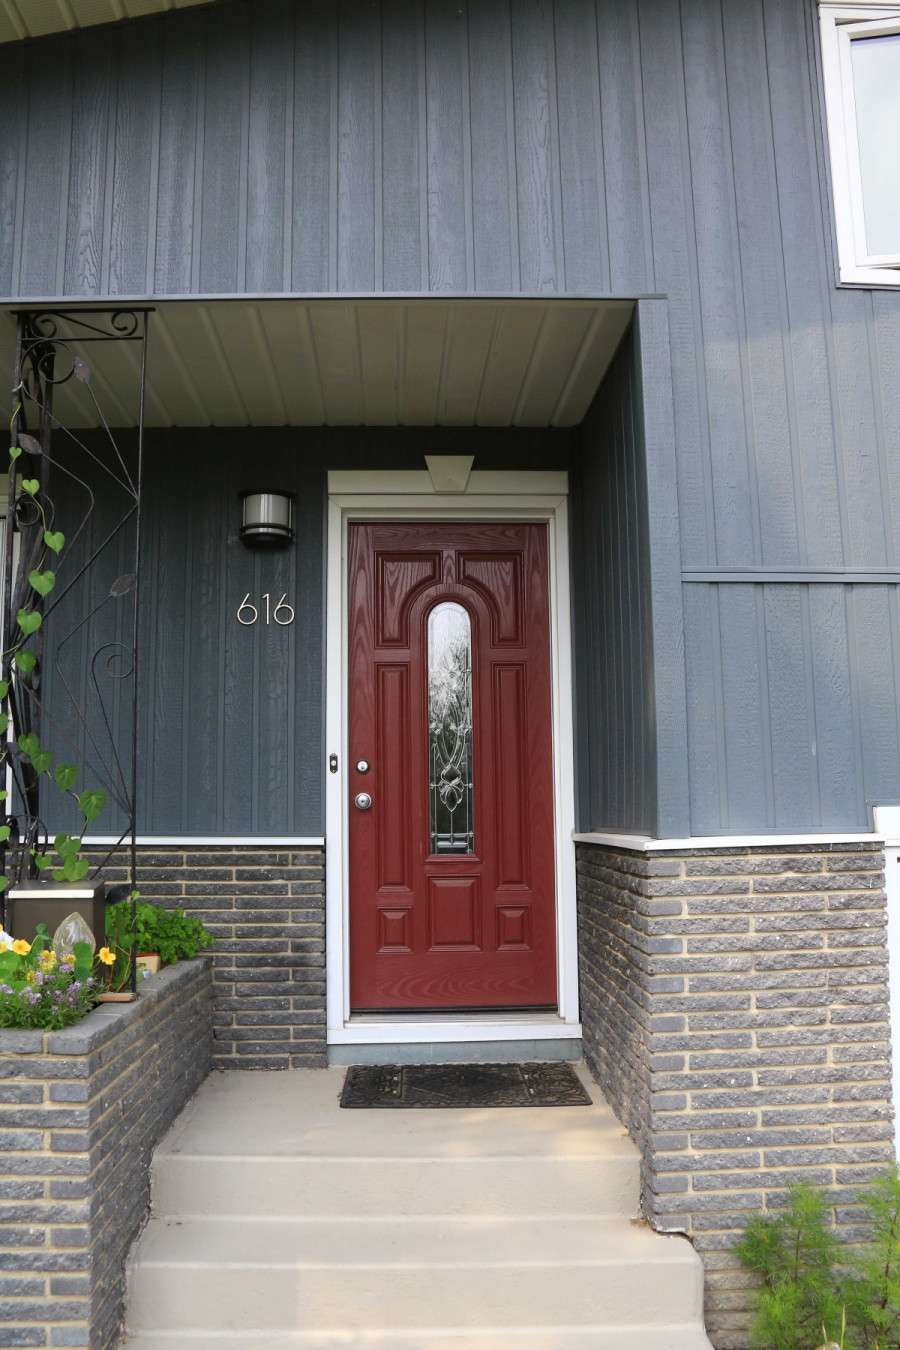 Choosing siding styles for your home